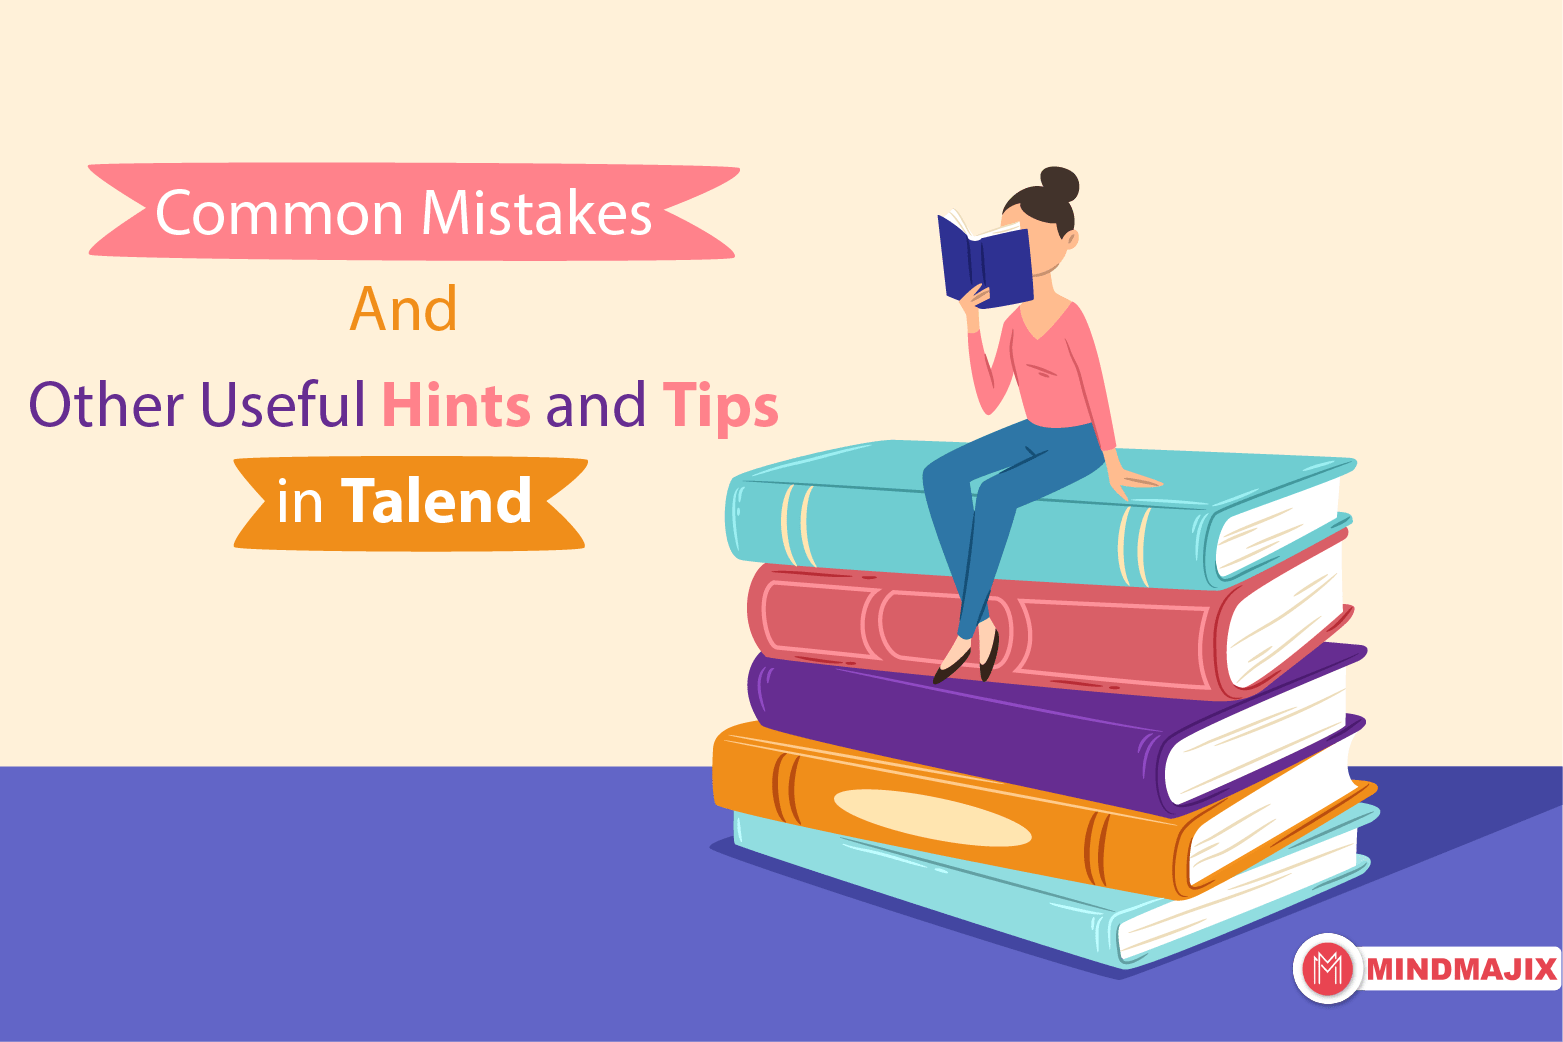 Common Mistakes and Other Useful Hints and Tips in Talend